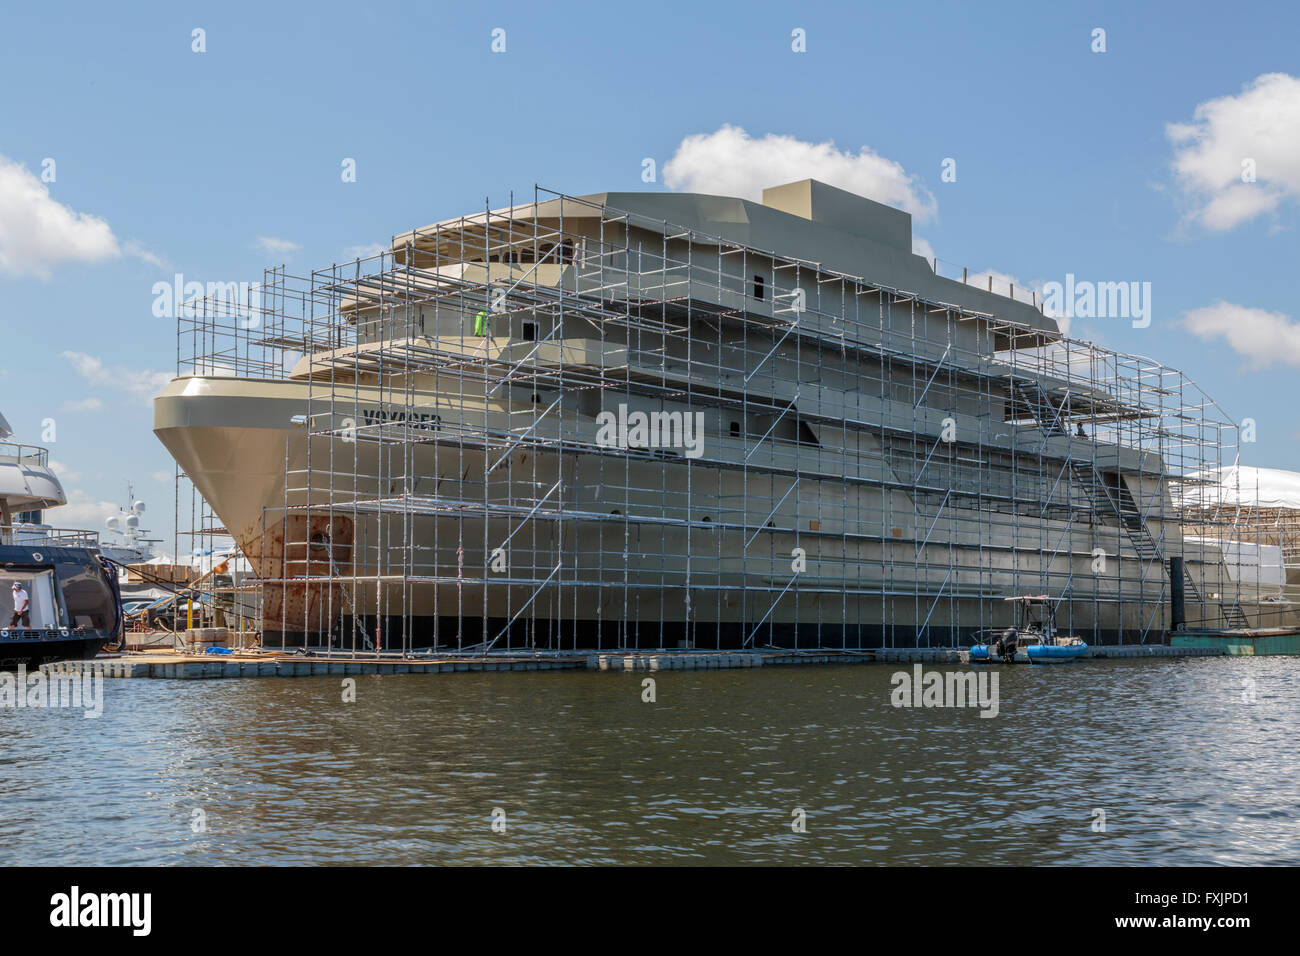 Super Yacht Stock Photos Amp Super Yacht Stock Images Alamy